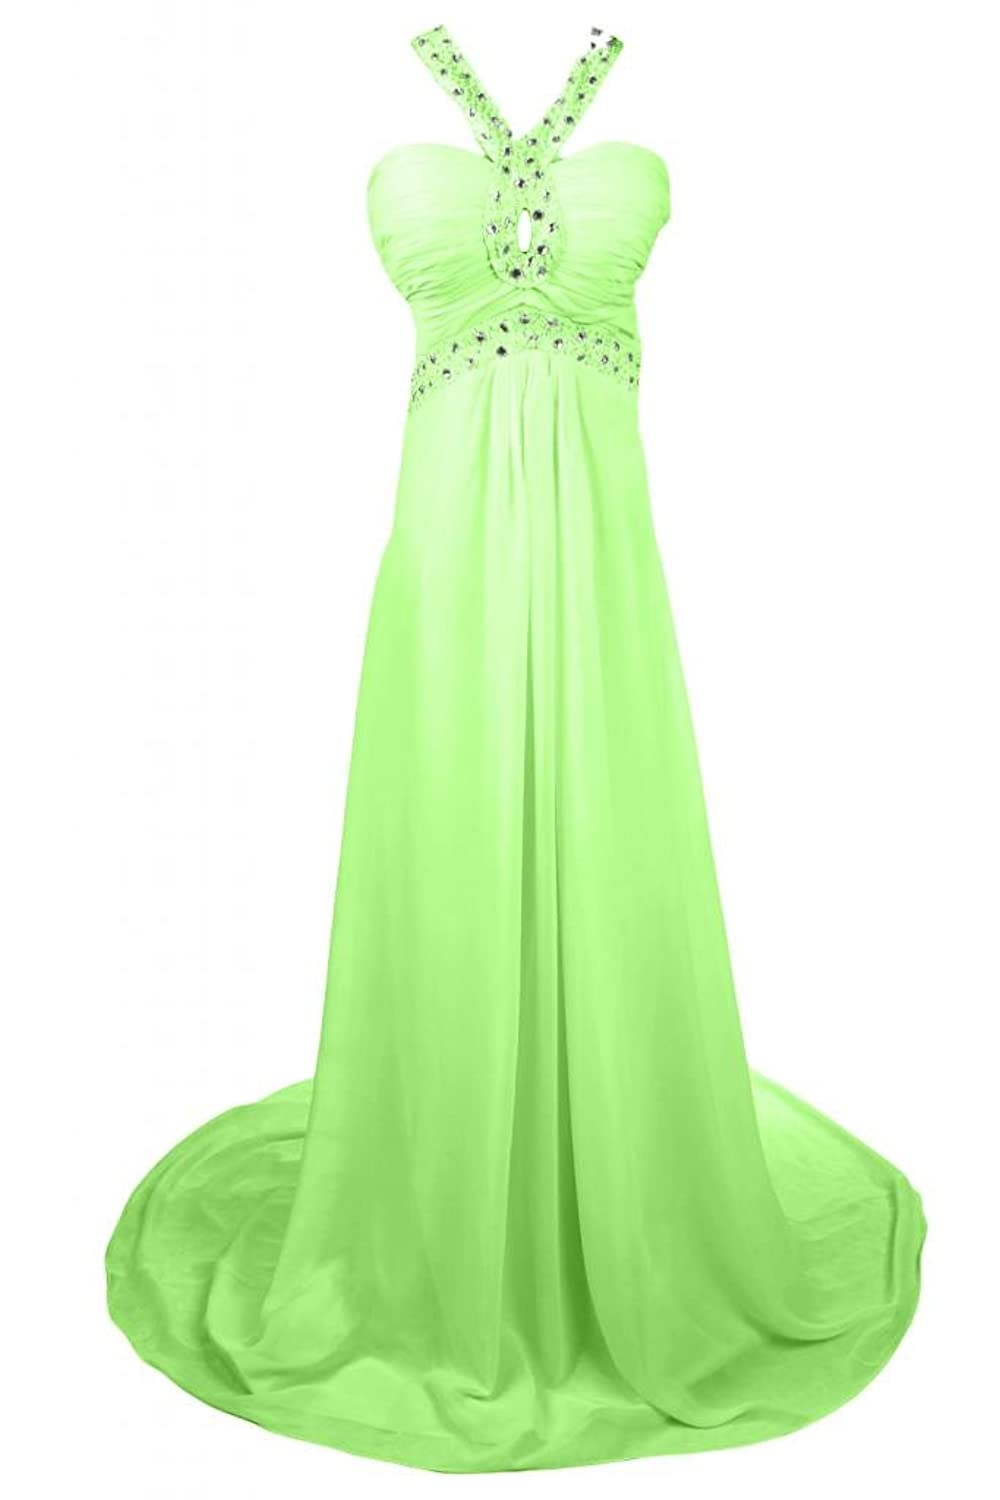 Sunvary Romantic Halter Neckline Pageant Dress Prom Gowns Long Evening Party Dresses